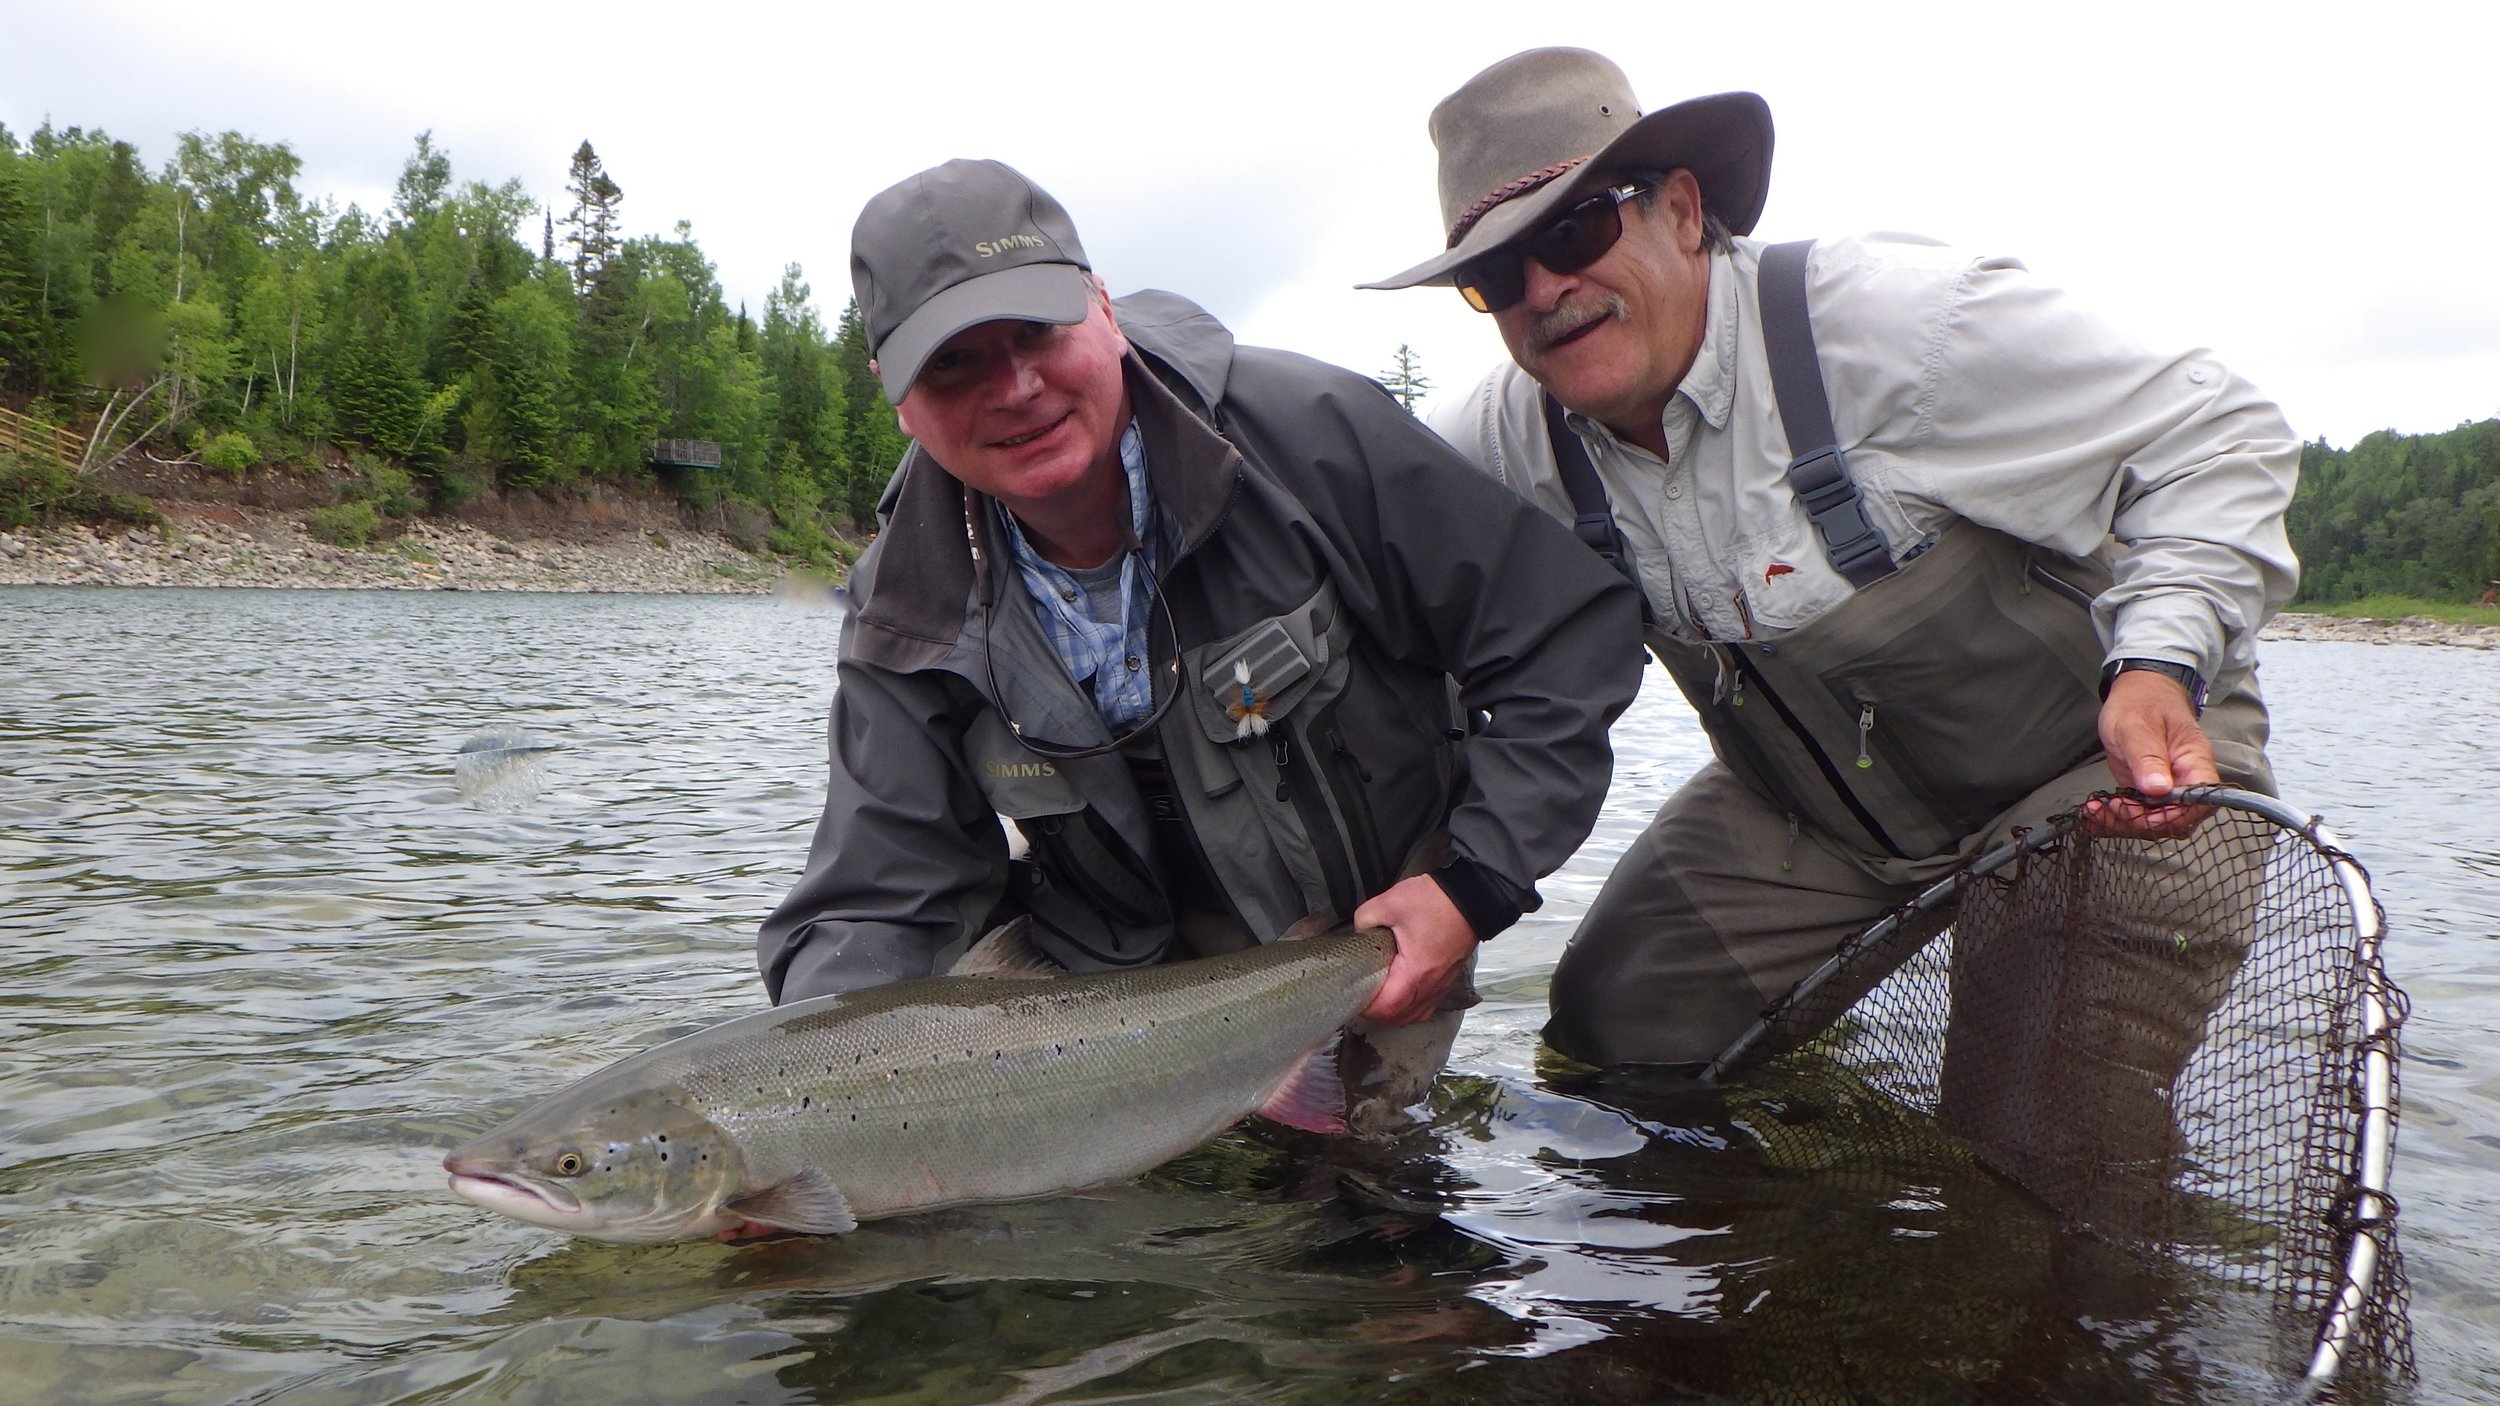 Marc Turcotte (right) has beenjoining us at camp Bonaventure for years, He and guide Mario Poirier landed this nice one after loosing 5 in a row! Finally one in the net !